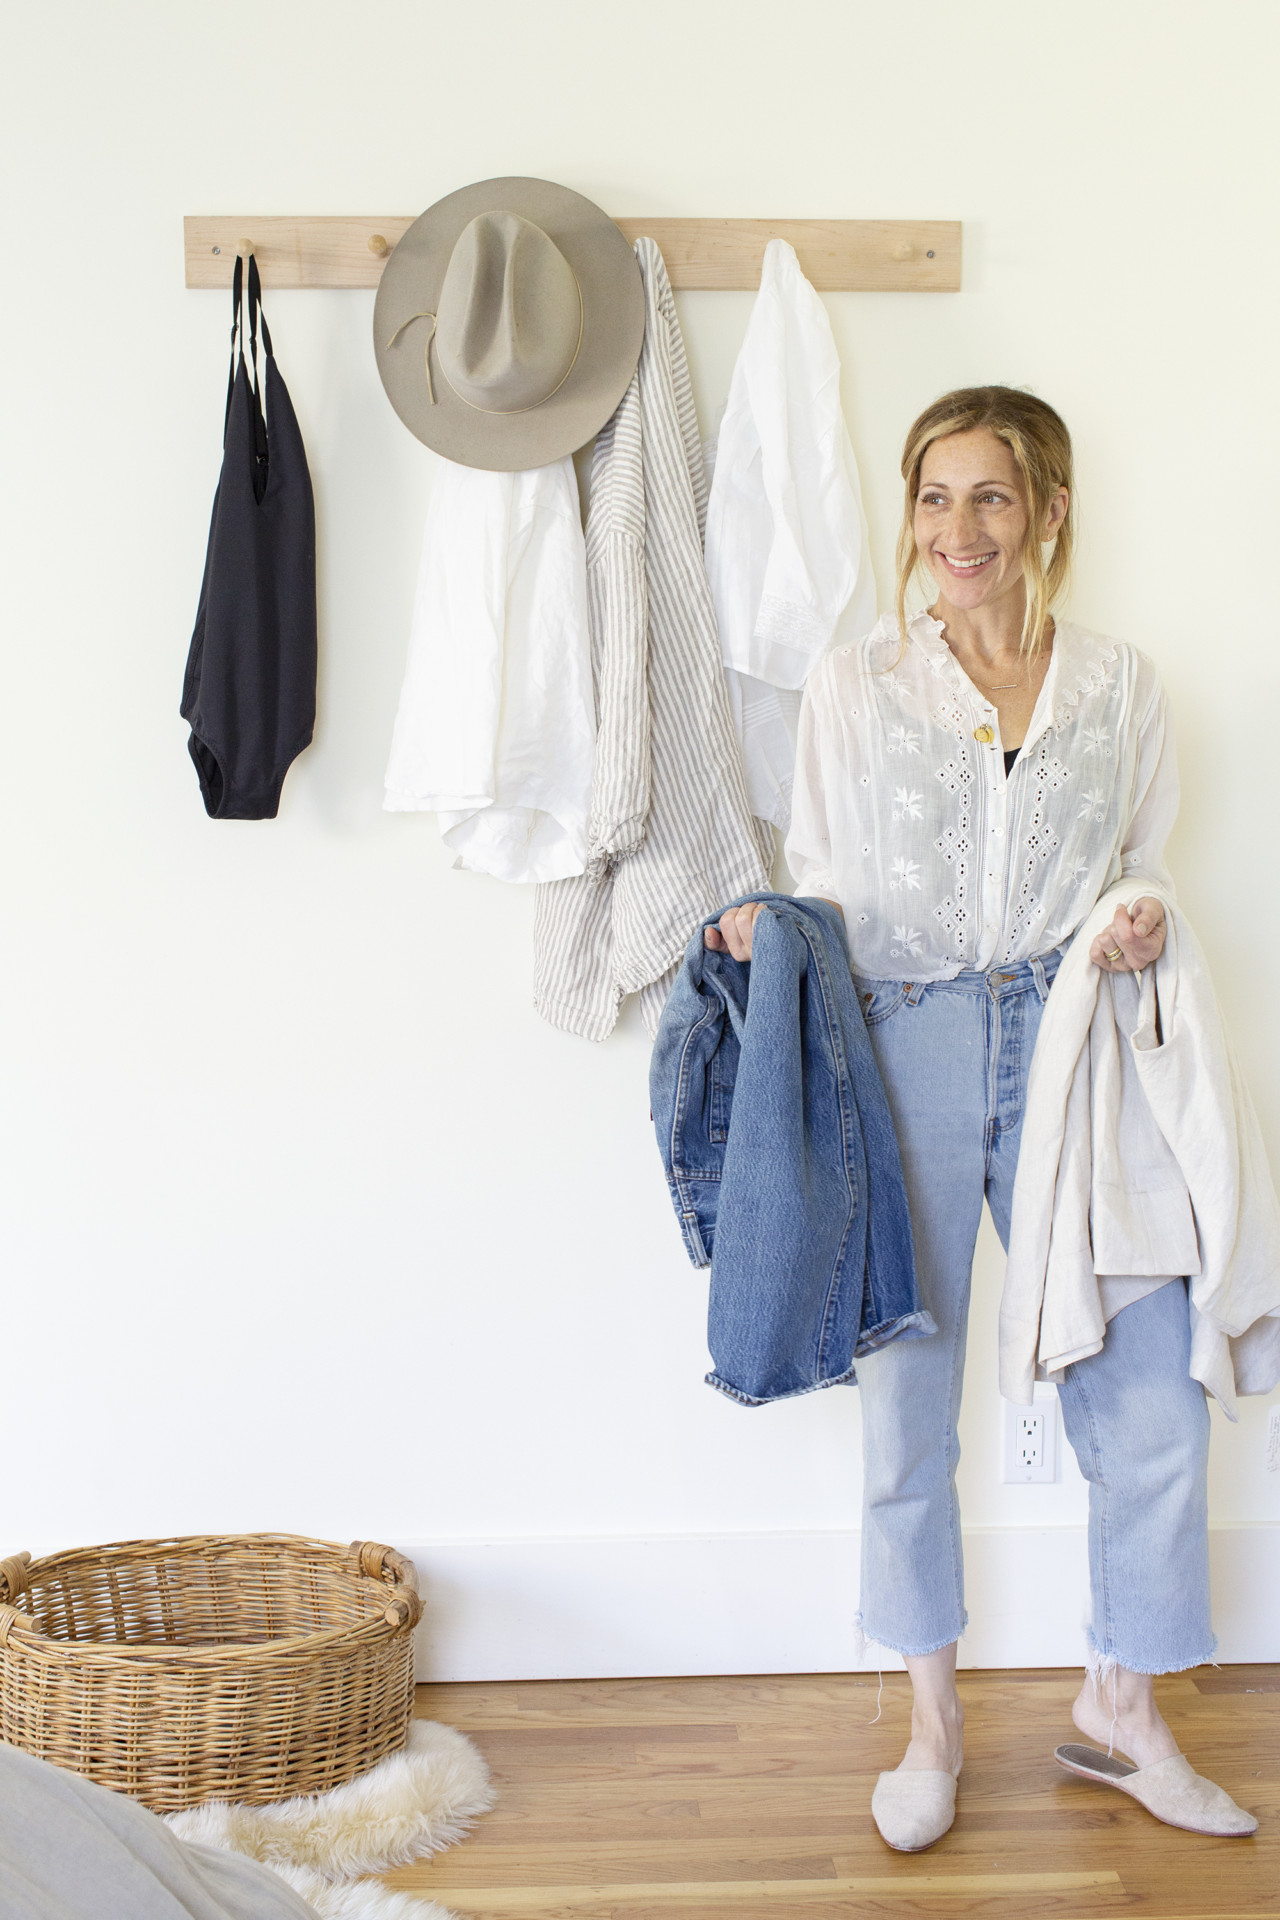 Ask Shira: Should I Sell or Donate the Clothes You No Longer Want?